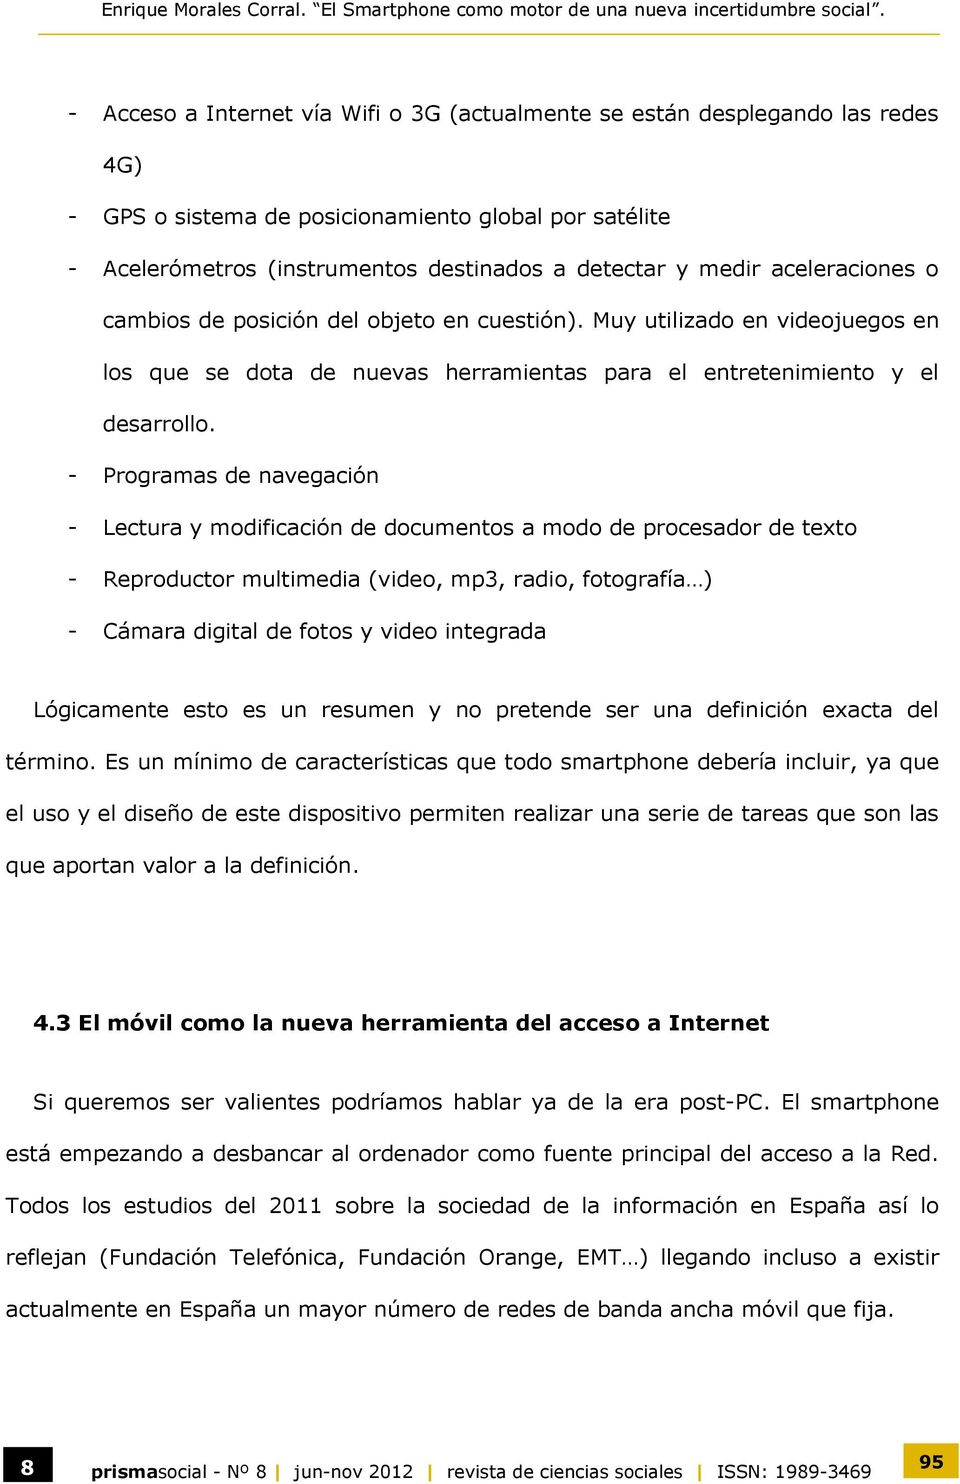 - Programas de navegación - Lectura y modificación de documentos a modo de procesador de texto - Reproductor multimedia (video, mp3, radio, fotografía ) - Cámara digital de fotos y video integrada